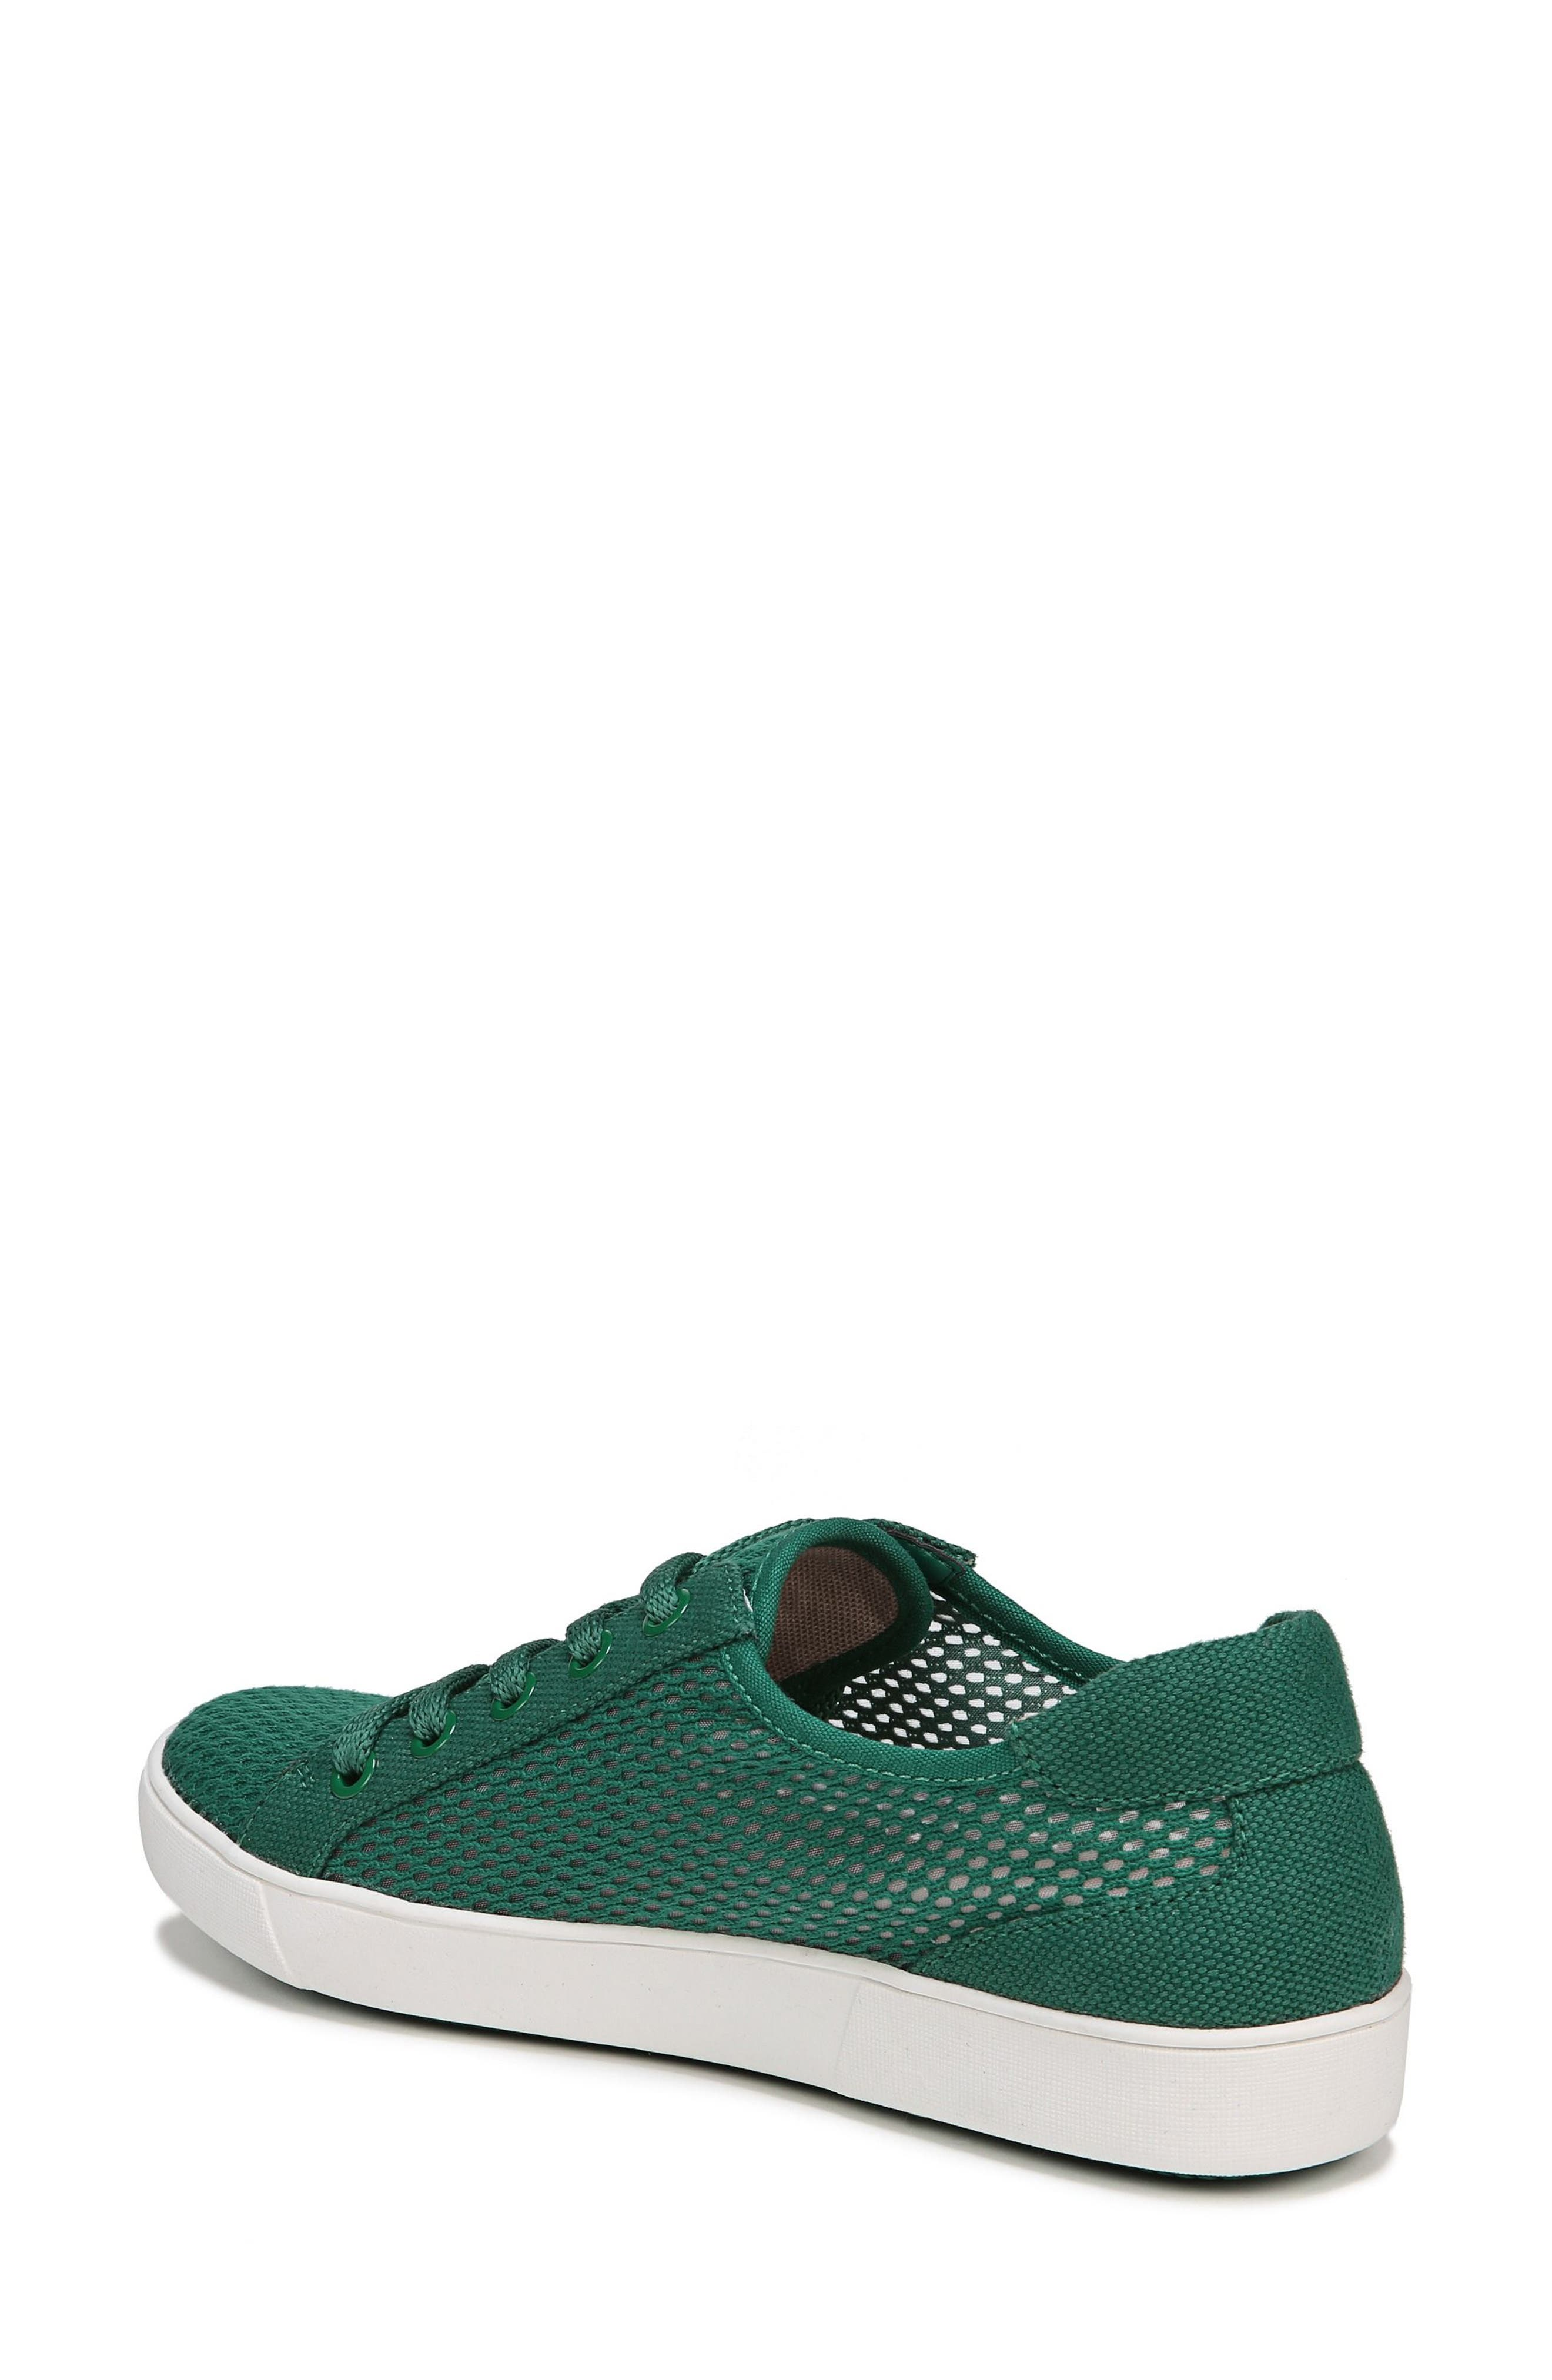 Morrison III Perforated Sneaker,                             Alternate thumbnail 2, color,                             Green Leather